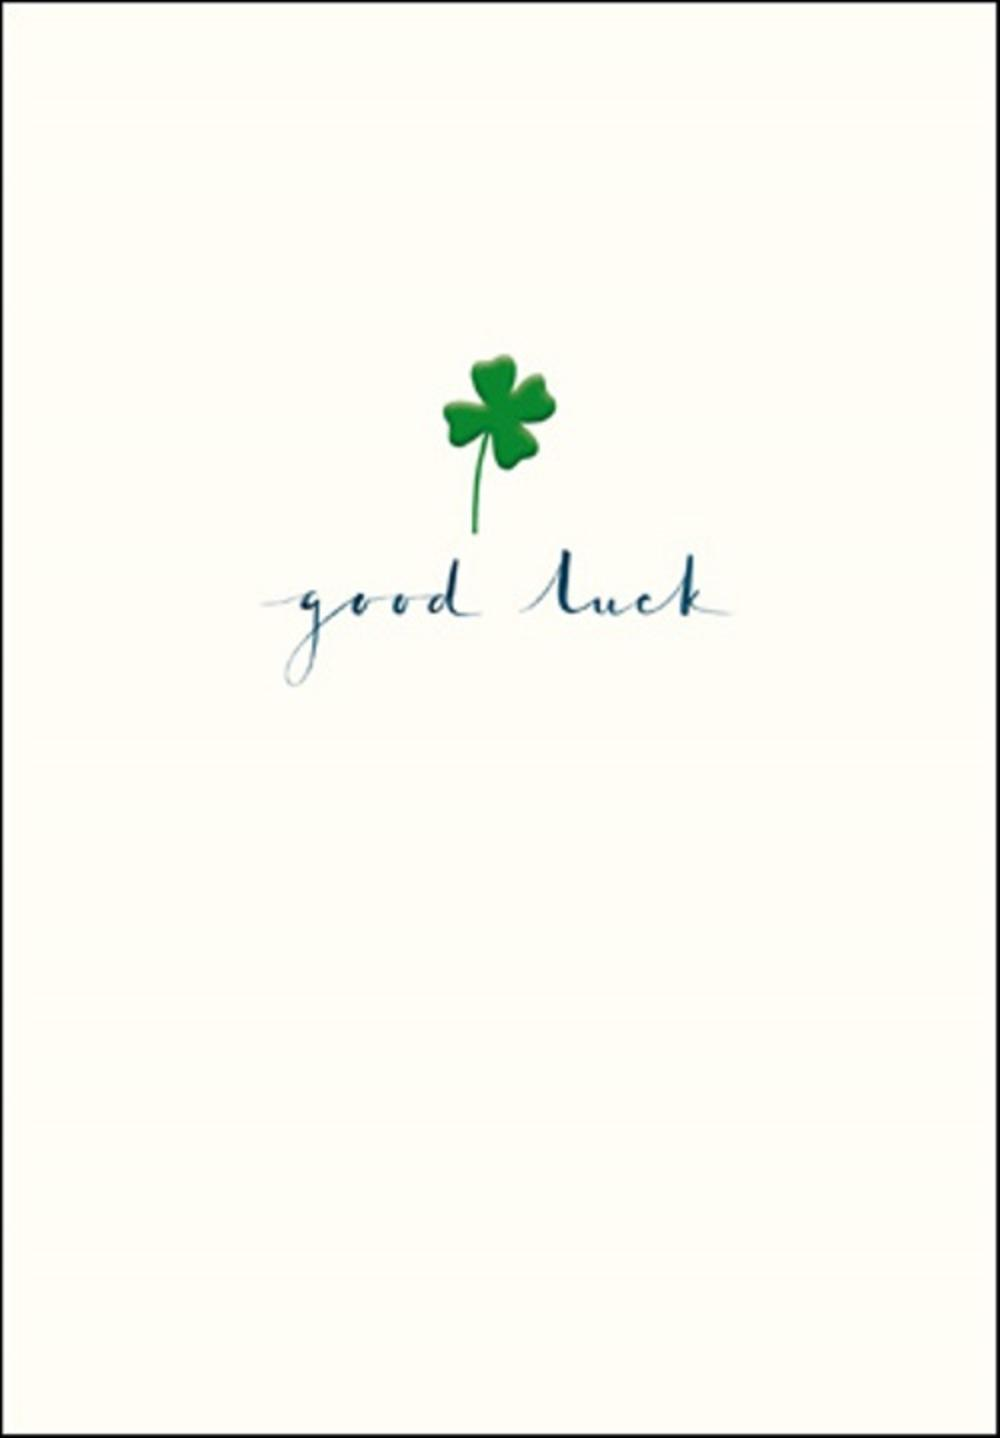 Good Luck Simple Green Foil Clover Greeting Card